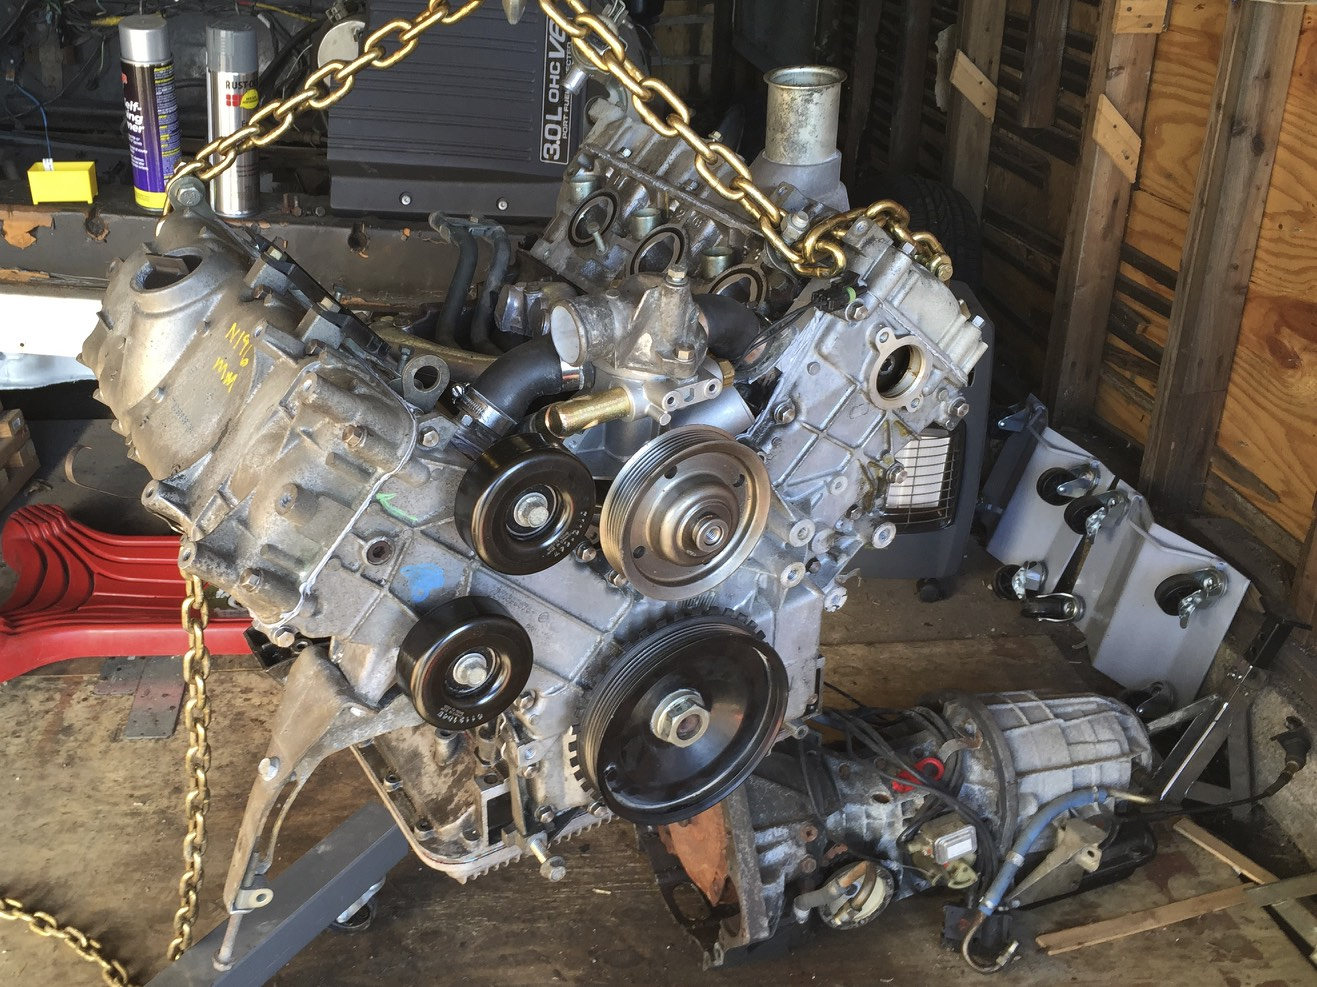 Swinging the engine around on the hoist to get mate it with the transmission.